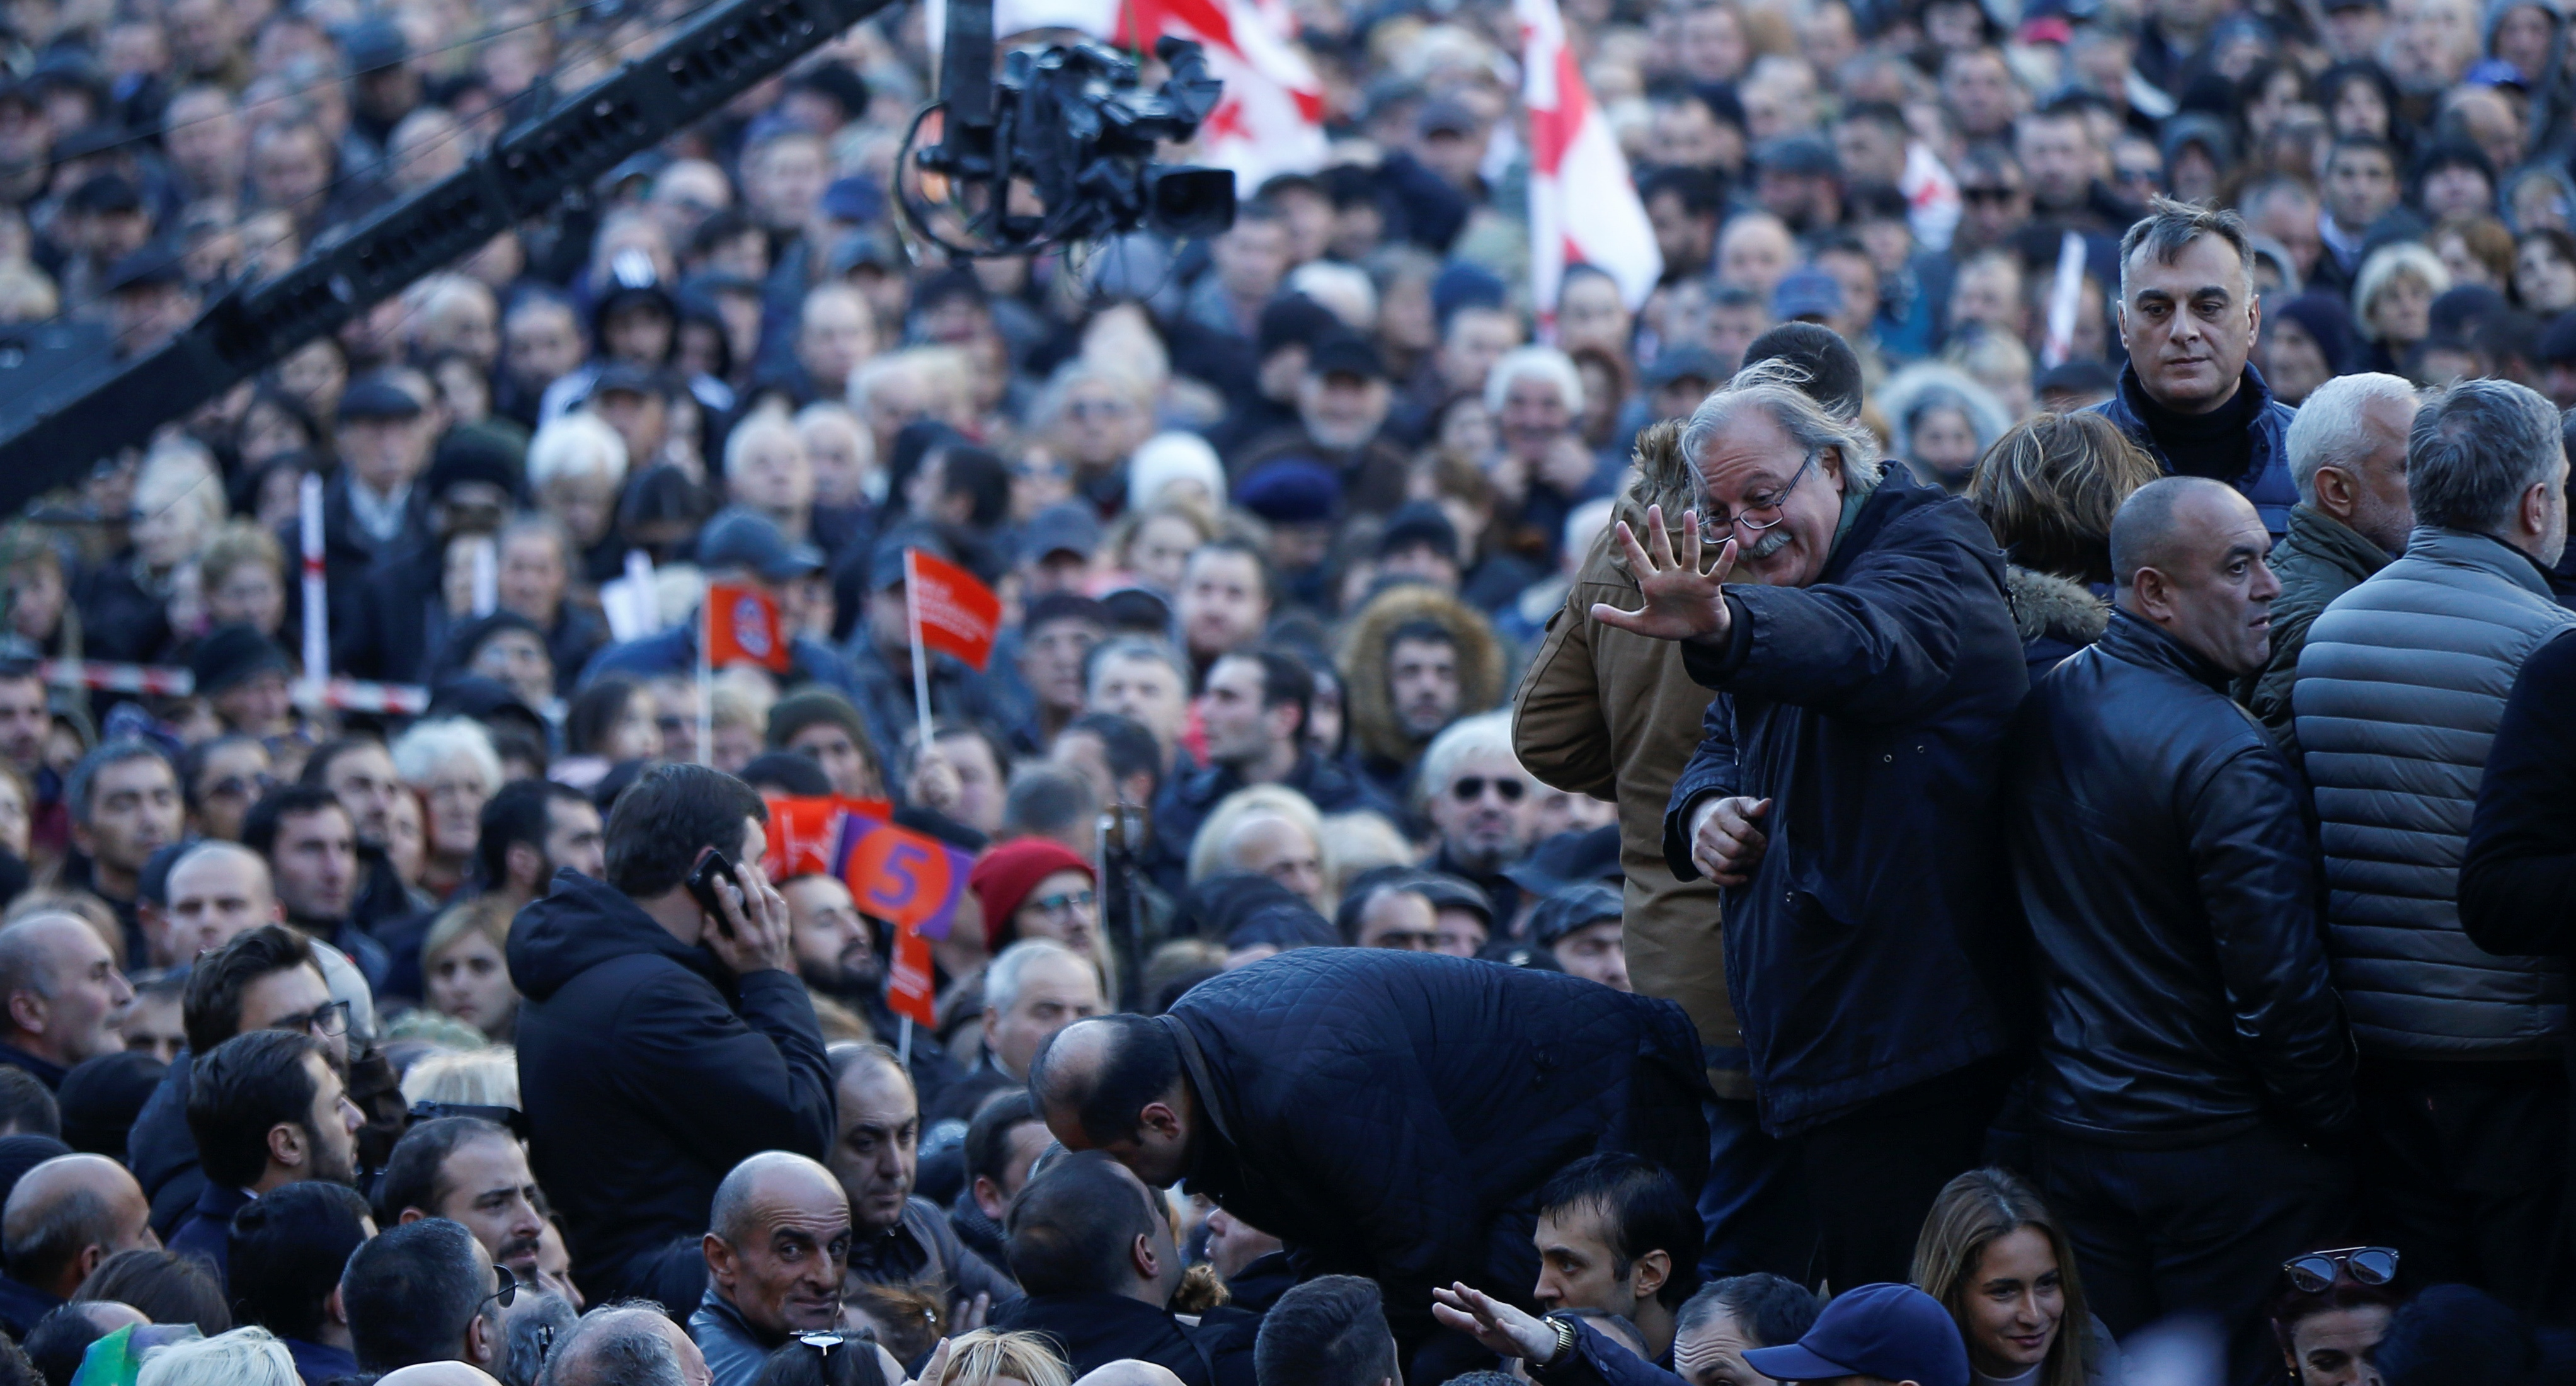 Protest rally in Tbilisi, December 2018. Photo: REUTERS/David Mdzinarishvili